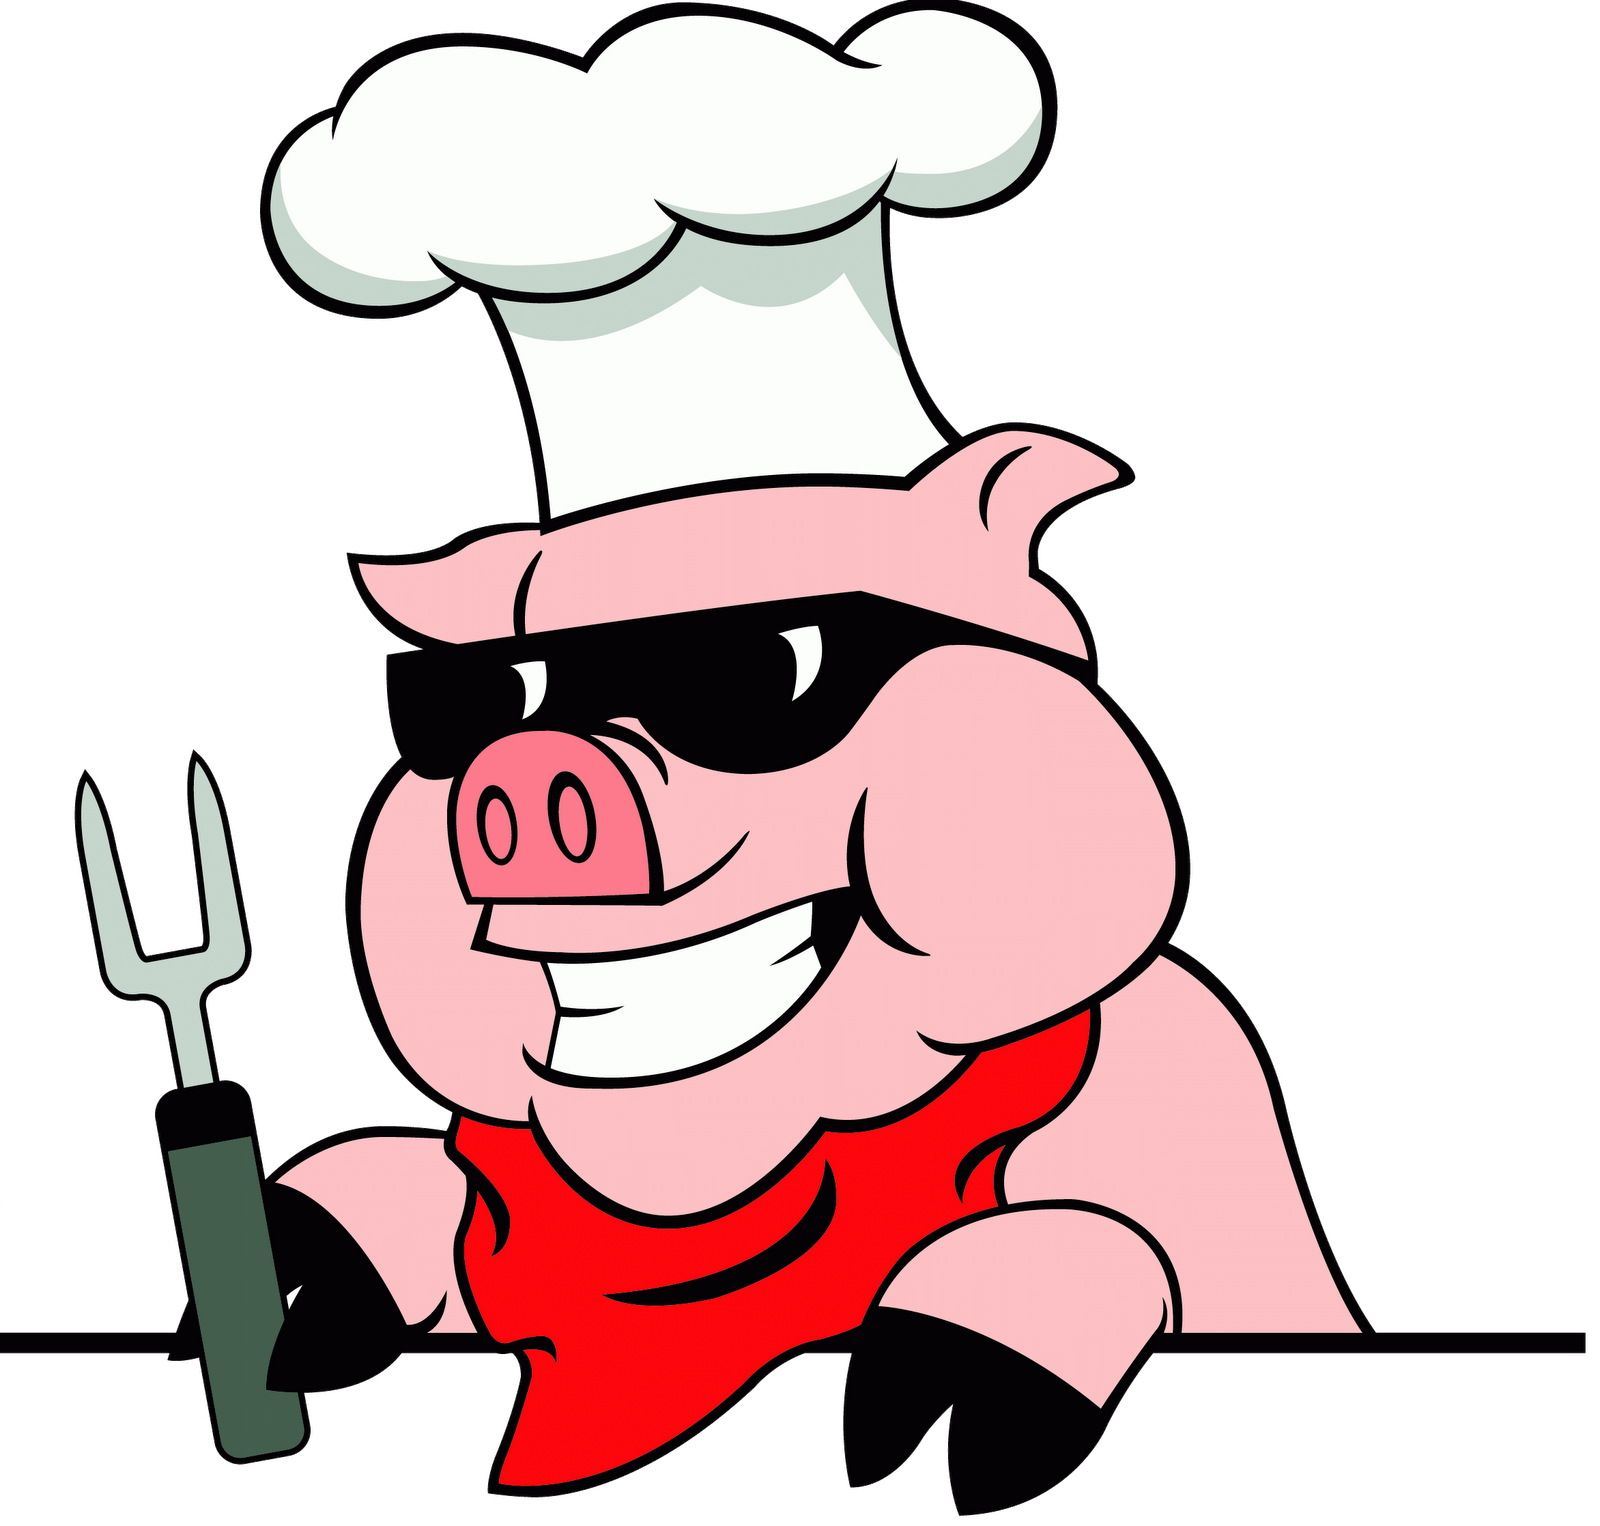 Cartoon pig at getdrawings. Catering clipart kid image free download